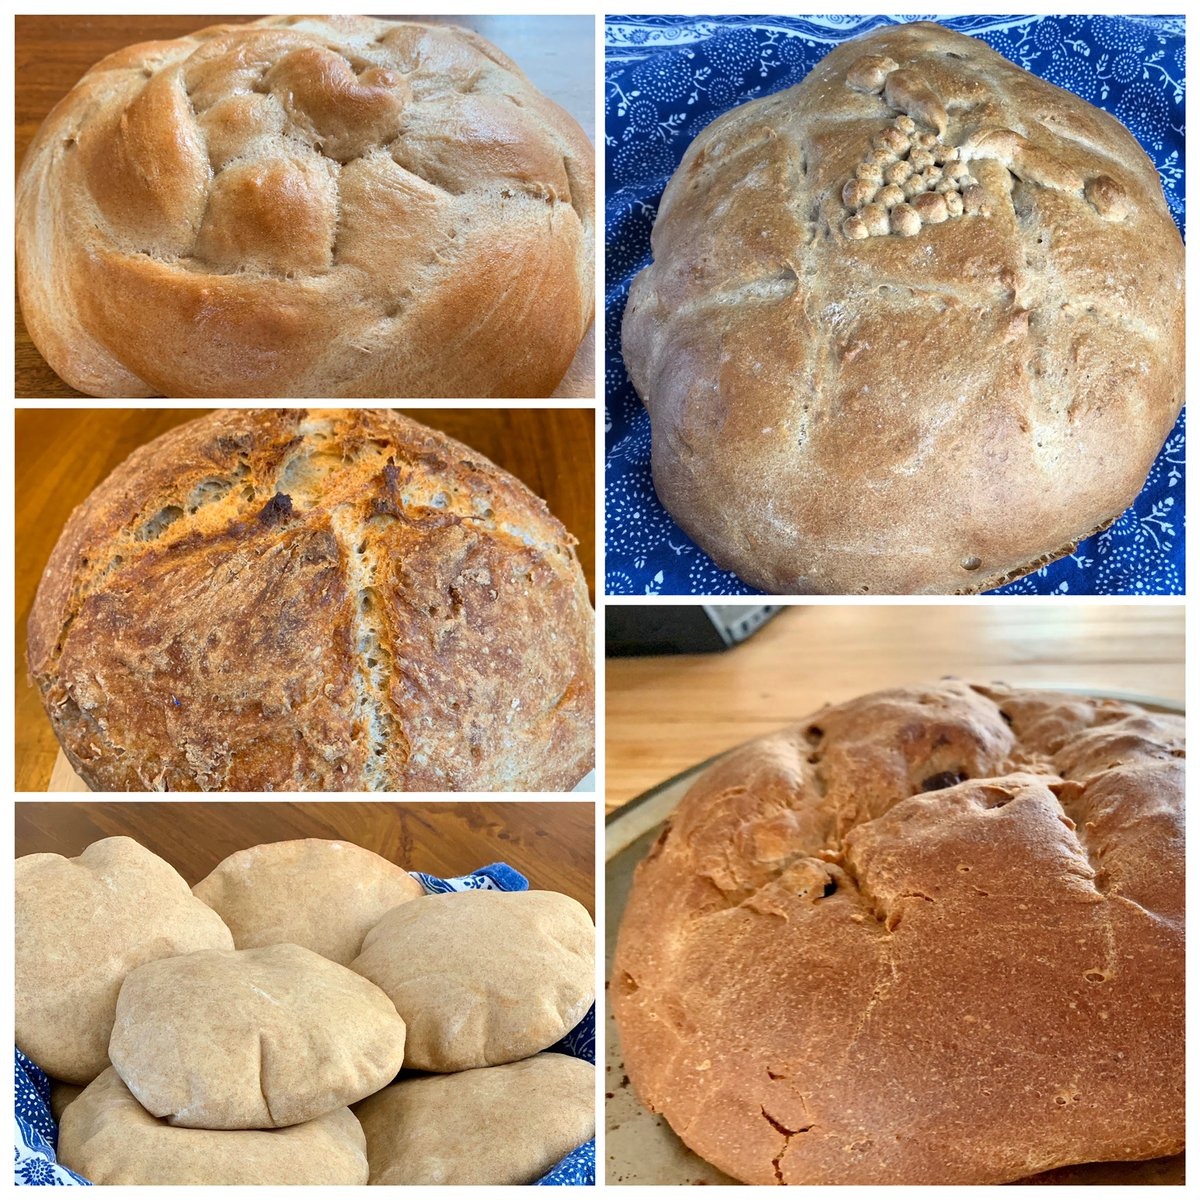 Bread retrospective, first two weeks of #StayHomeCA #QuarantineLife